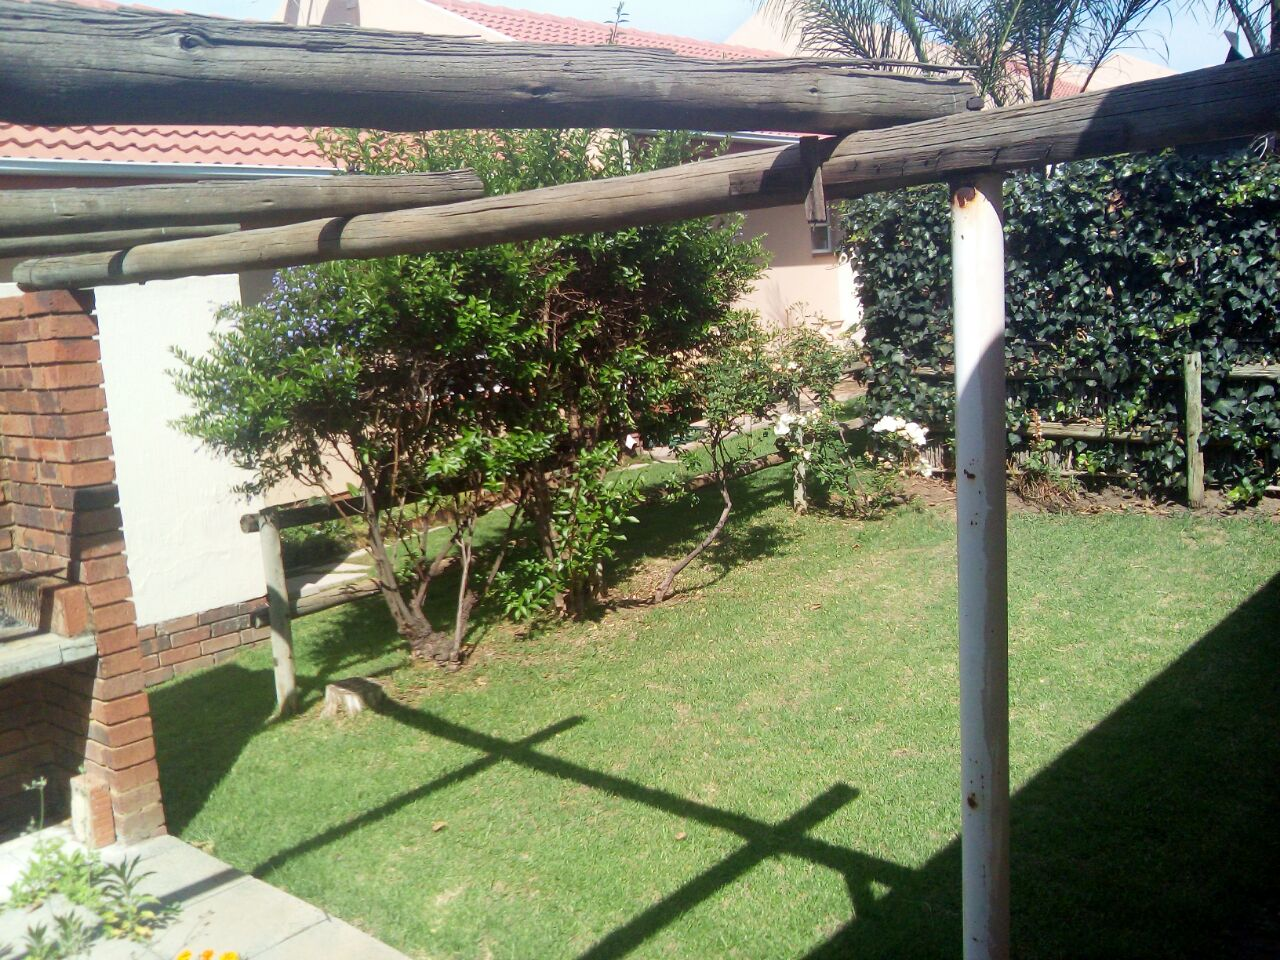 2 Bedroom Townhouse for sale in Sunninghill ENT0074719 : photo#4